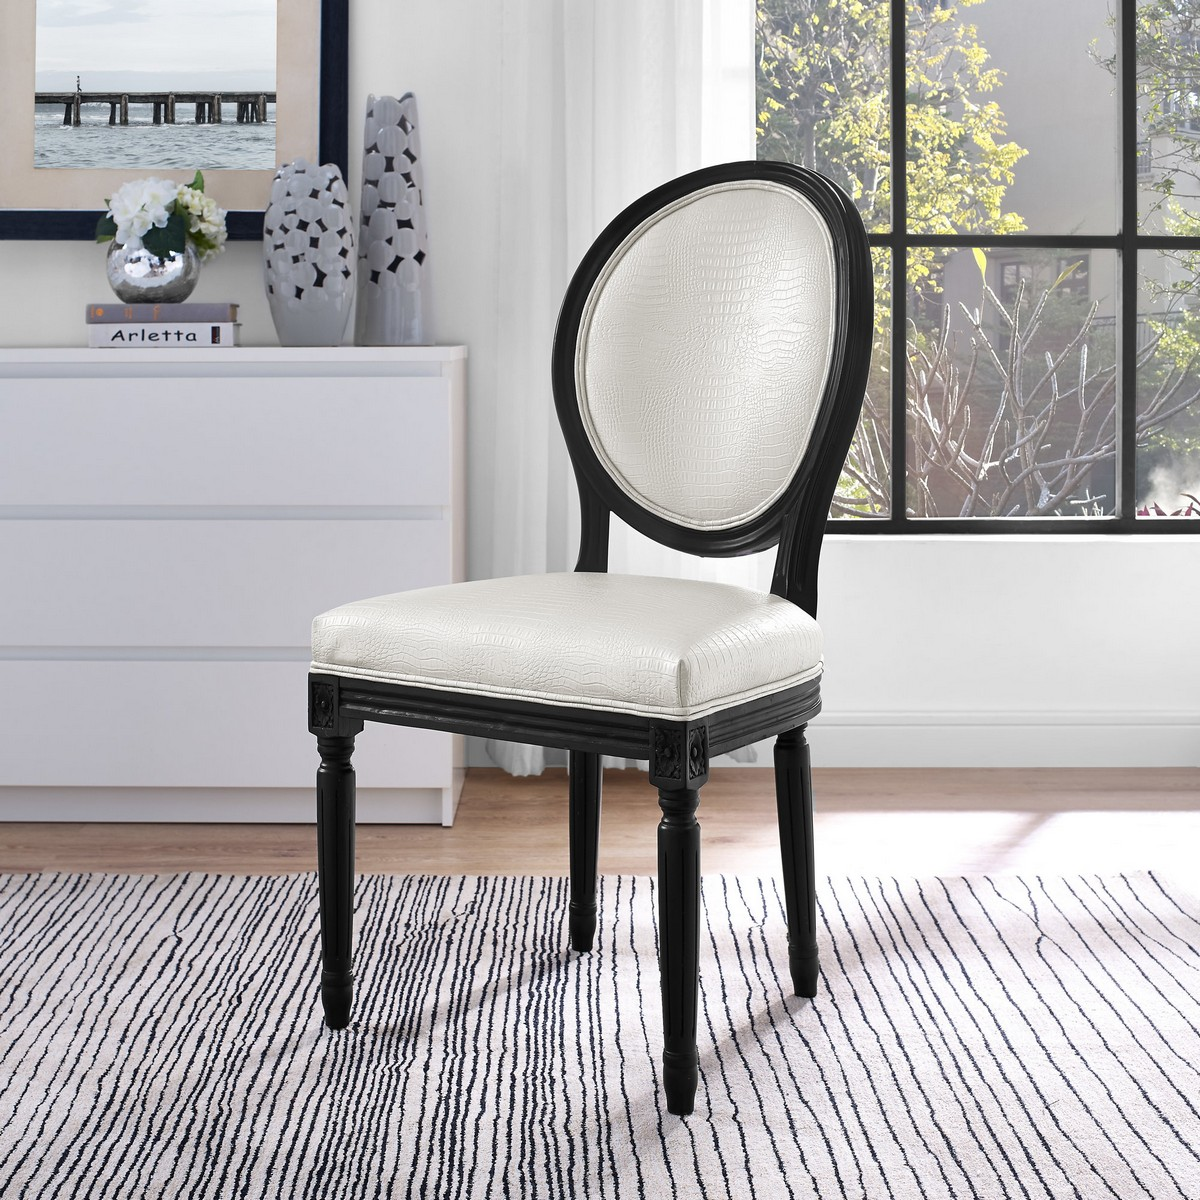 tov furniture philip white croc dining chair set of 2 - Tov Furniture